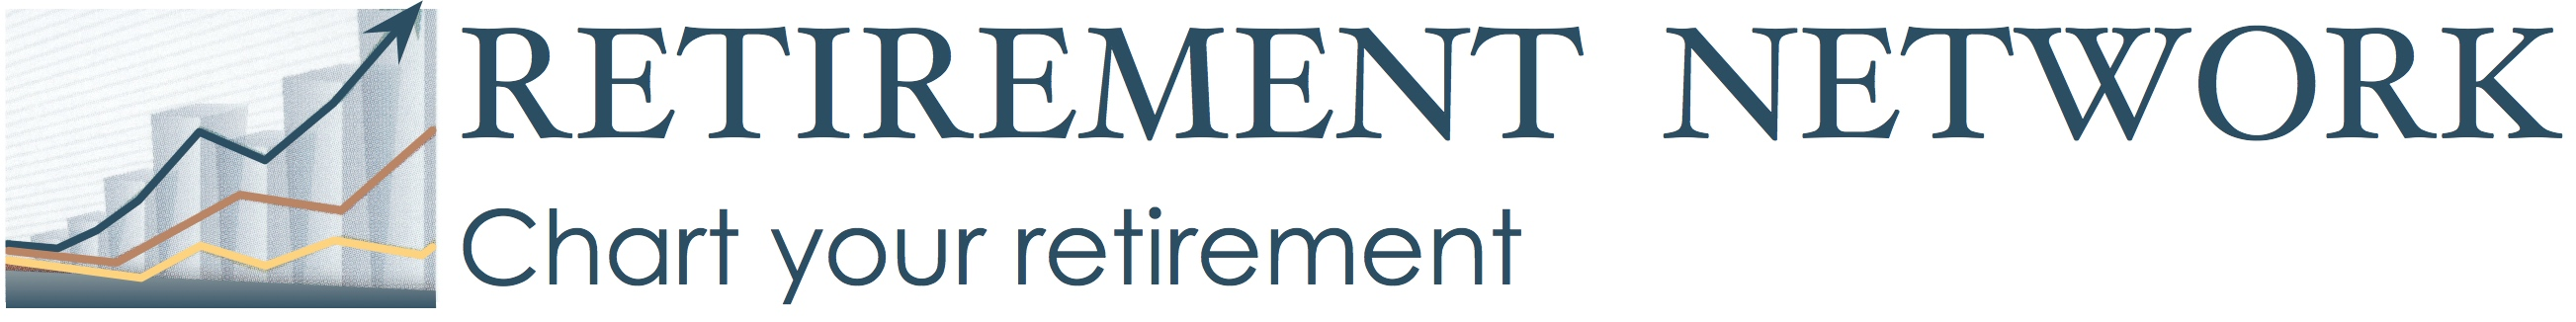 Retirement Network